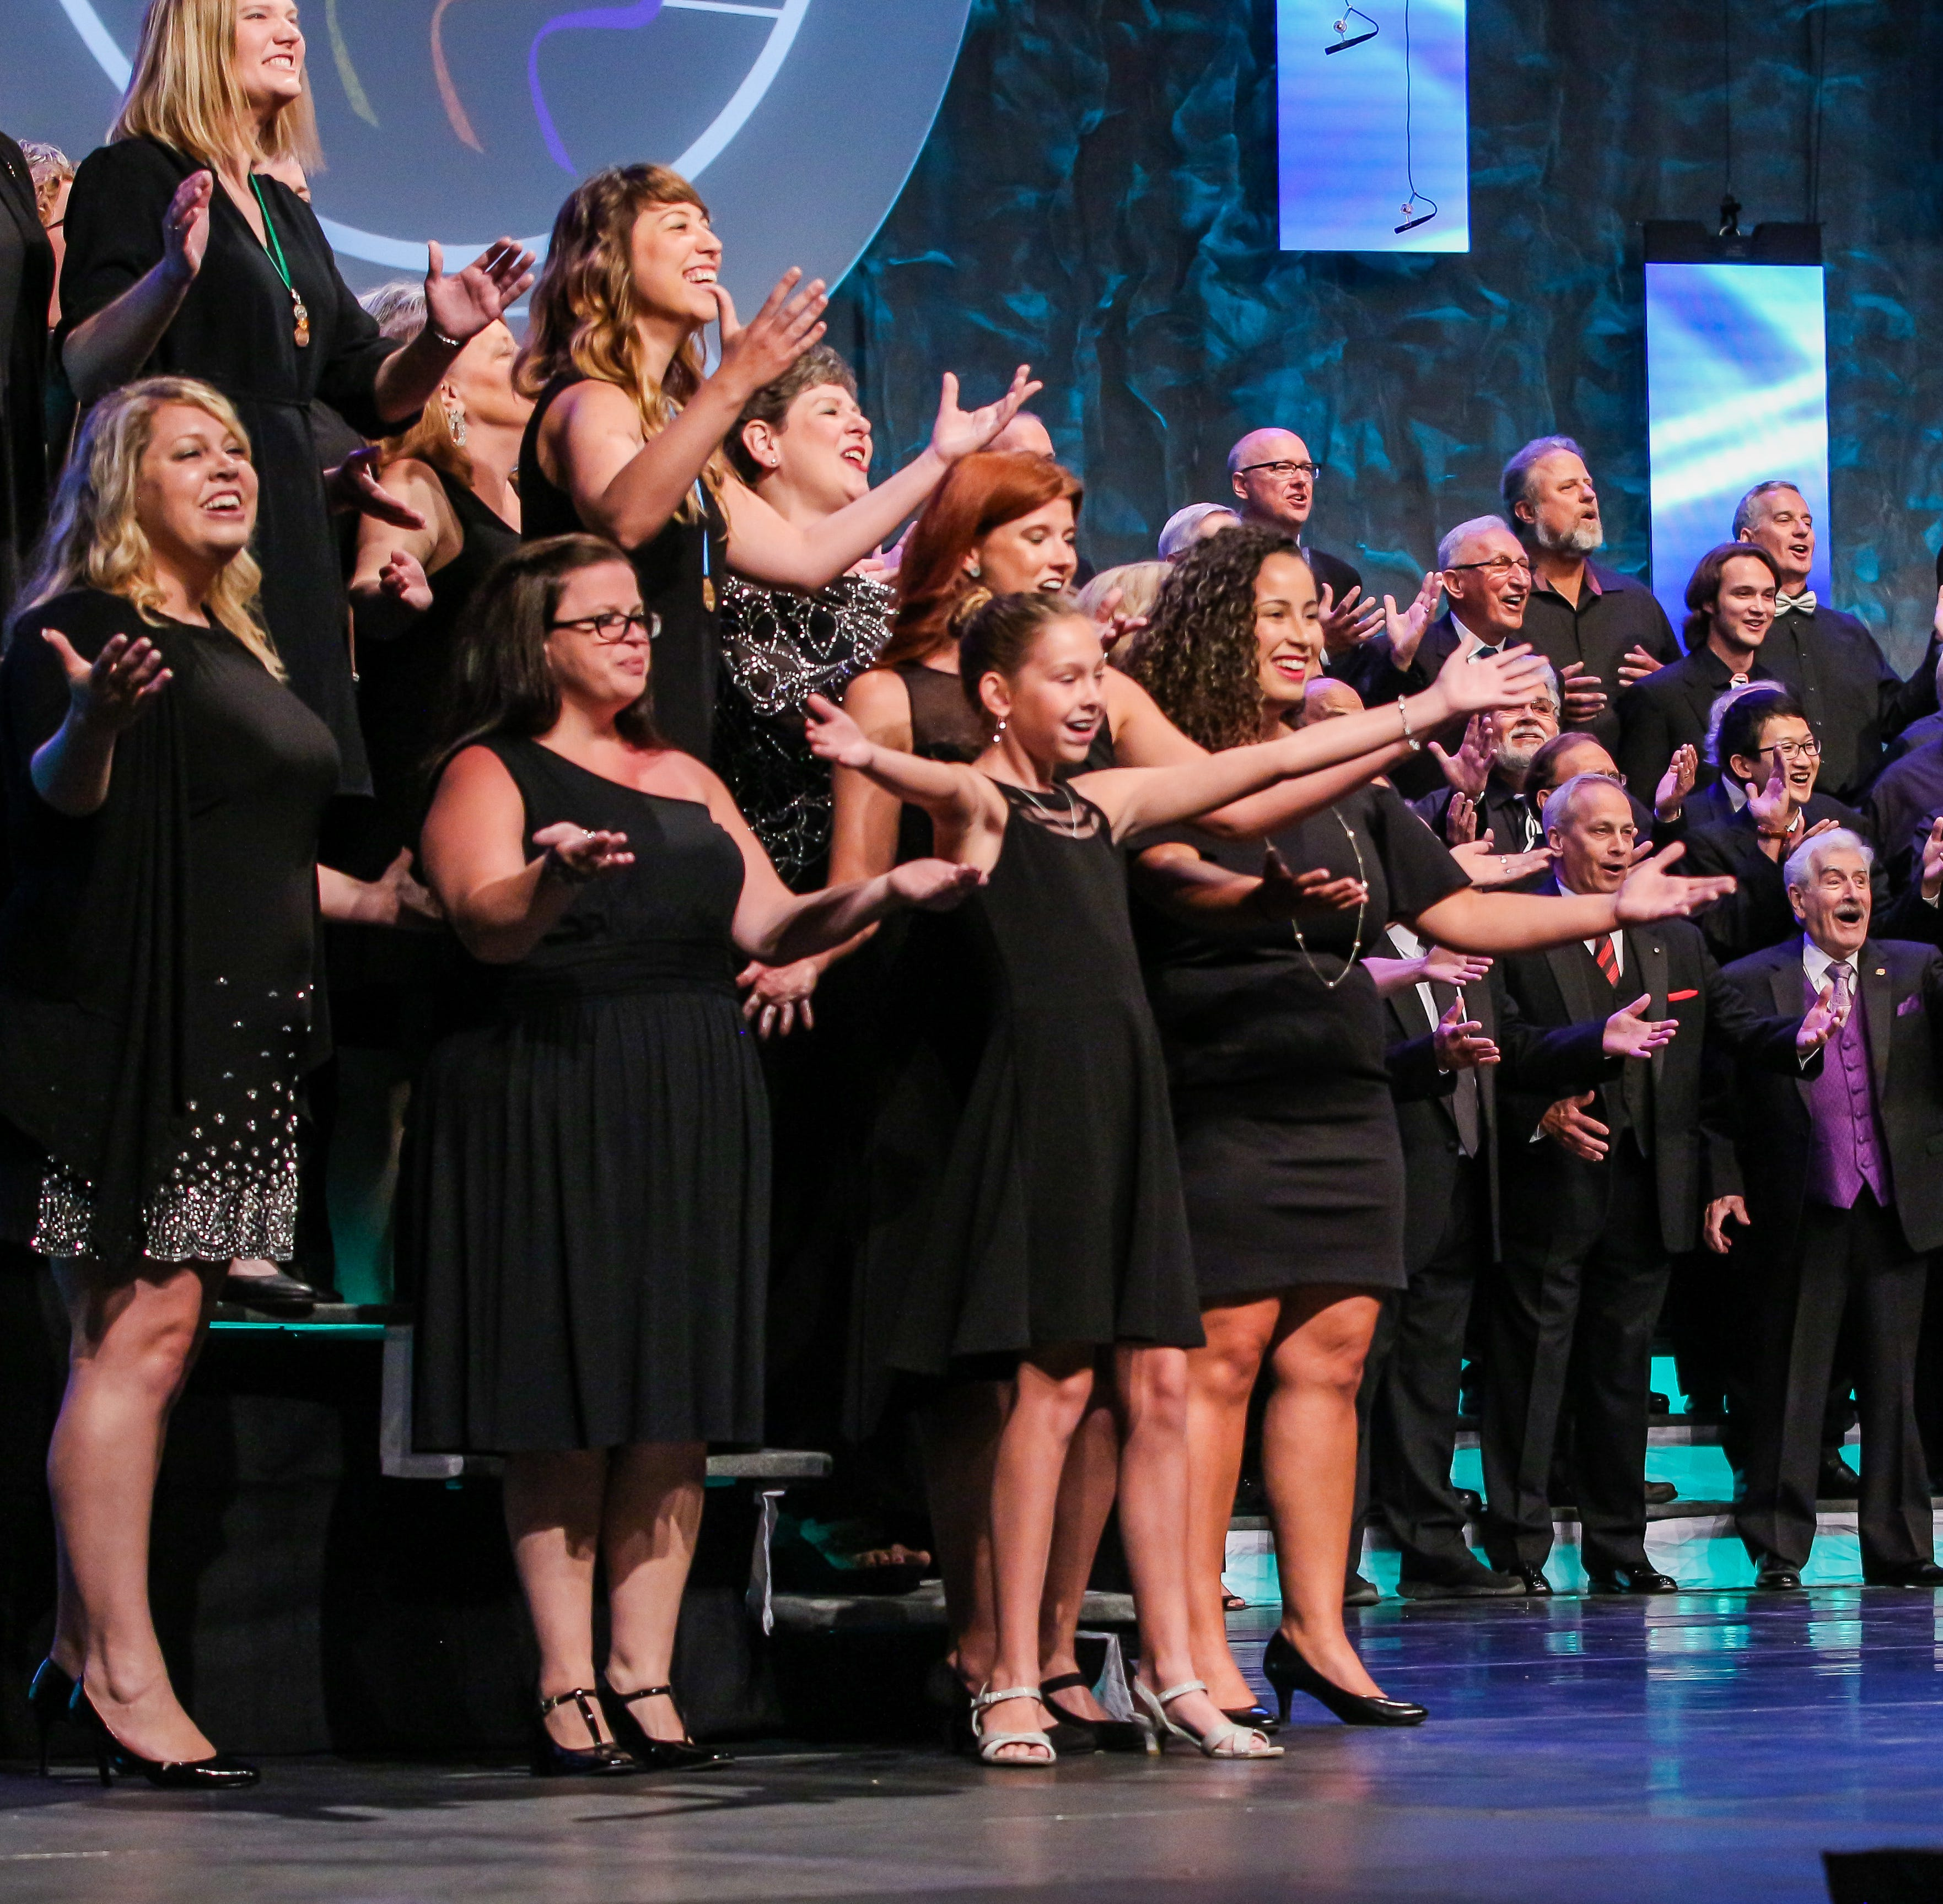 The Barbershop Harmony Society is embracing big changes